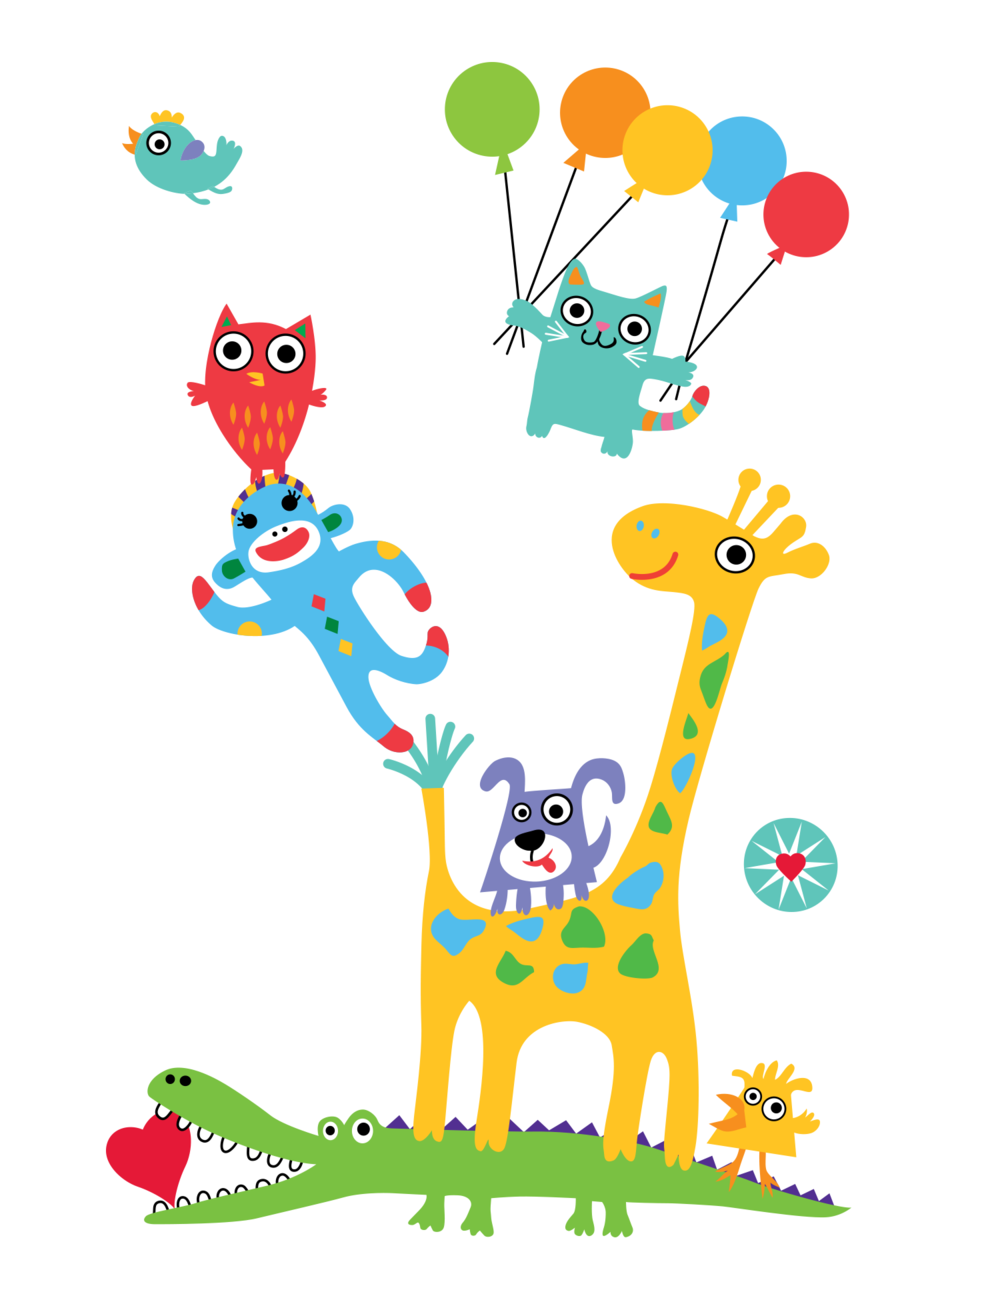 alligator_giraffe_birds_andi_bird.png